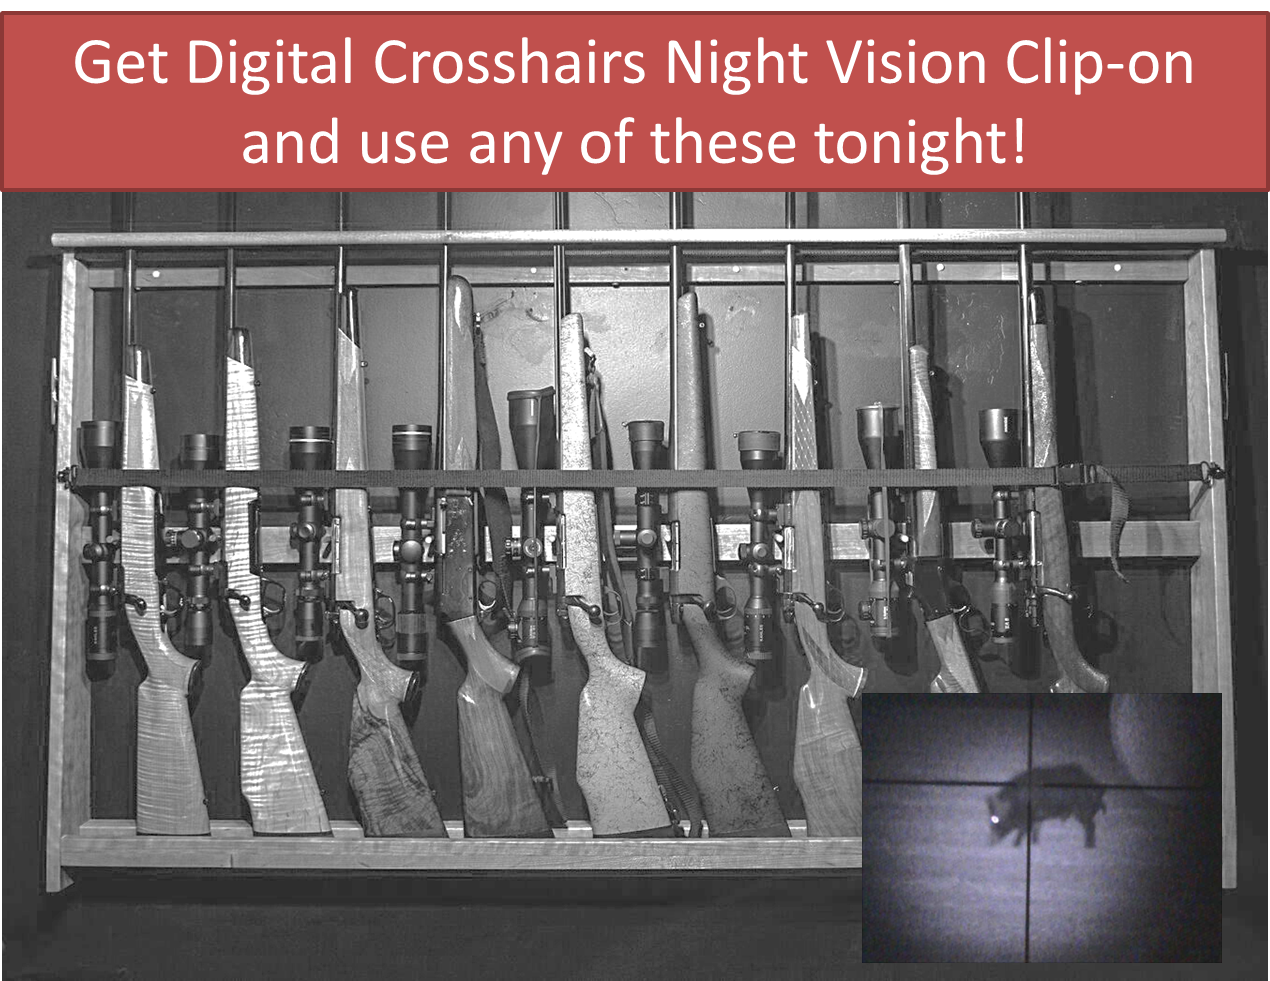 Night Vision Clip-on